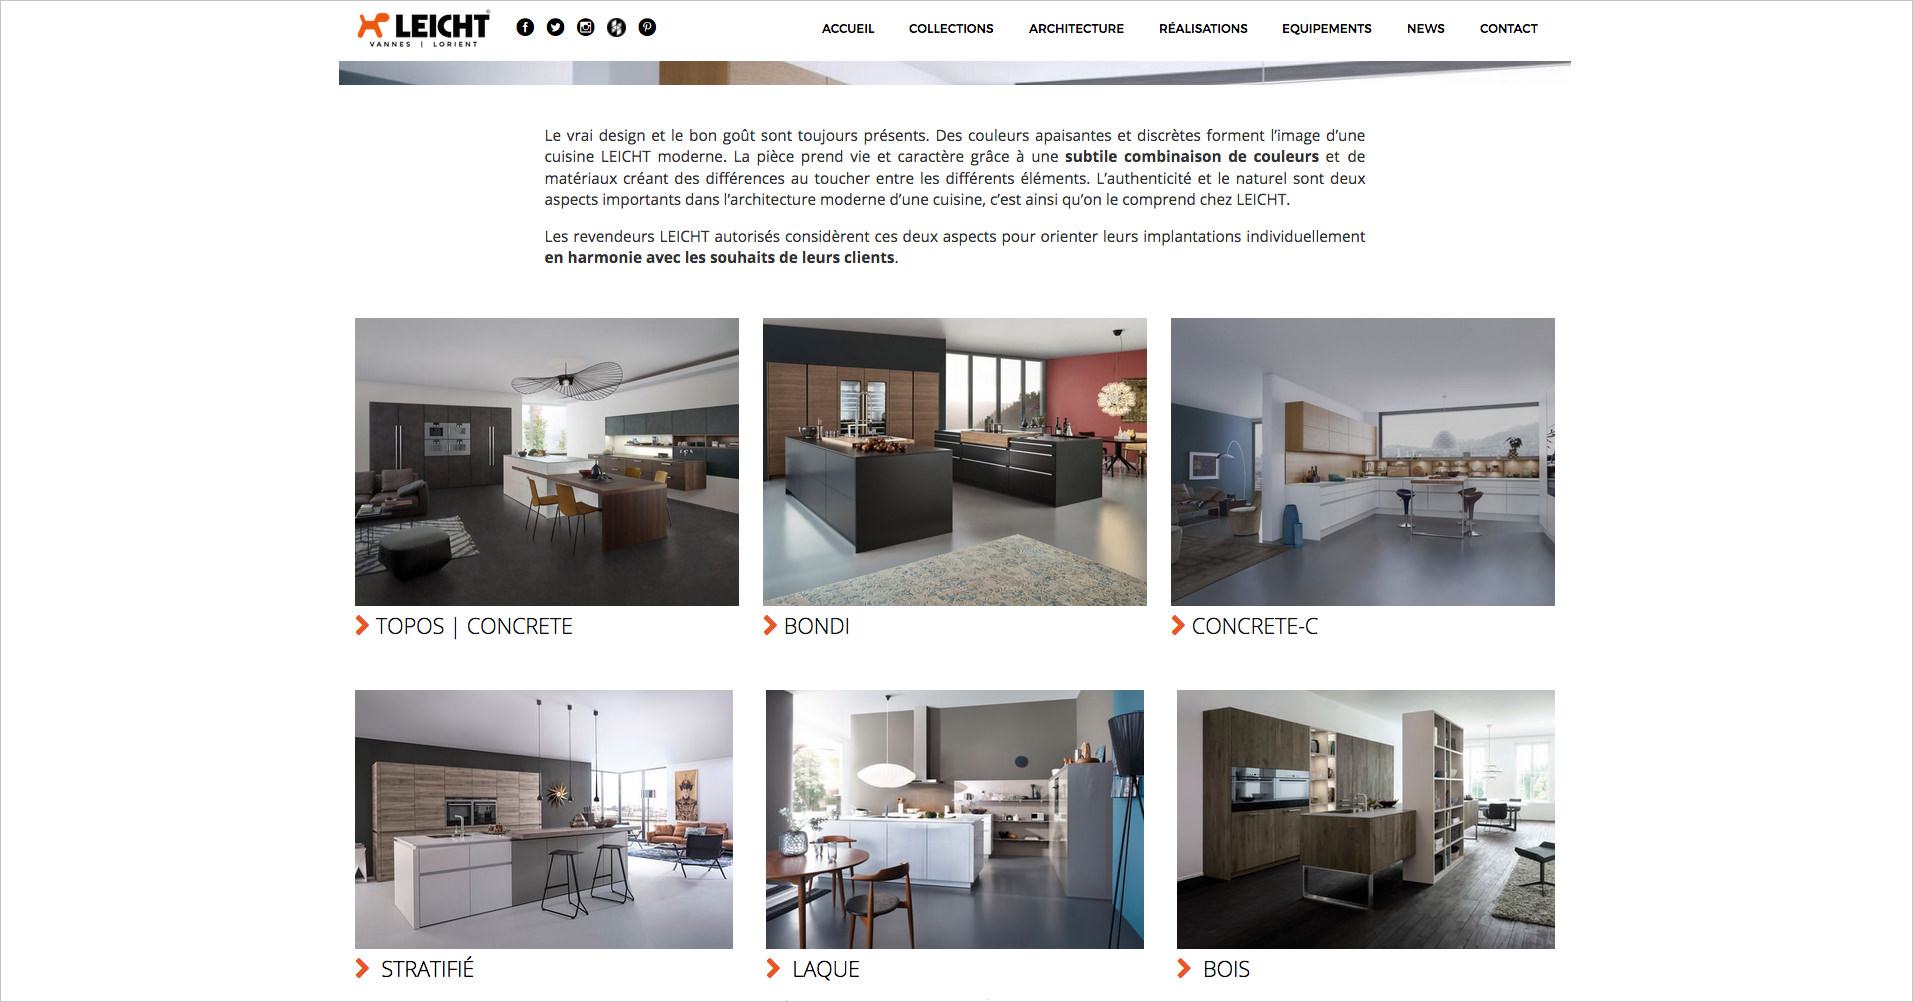 leicht-vannes-ecran-site-web-collection